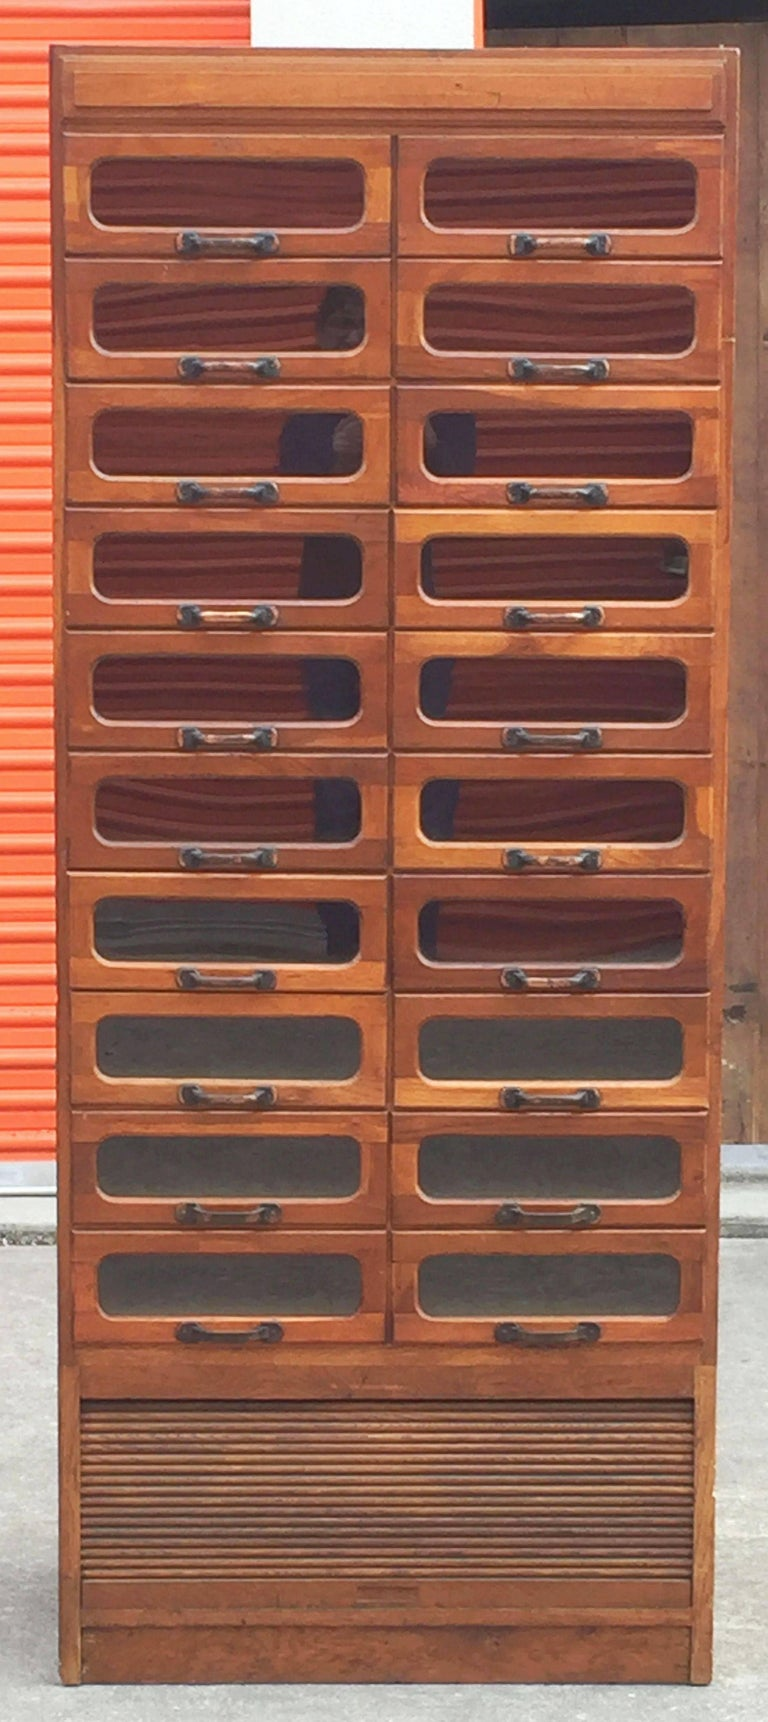 An exceptional large haberdashery or haberdasher's cabinet from England featuring: